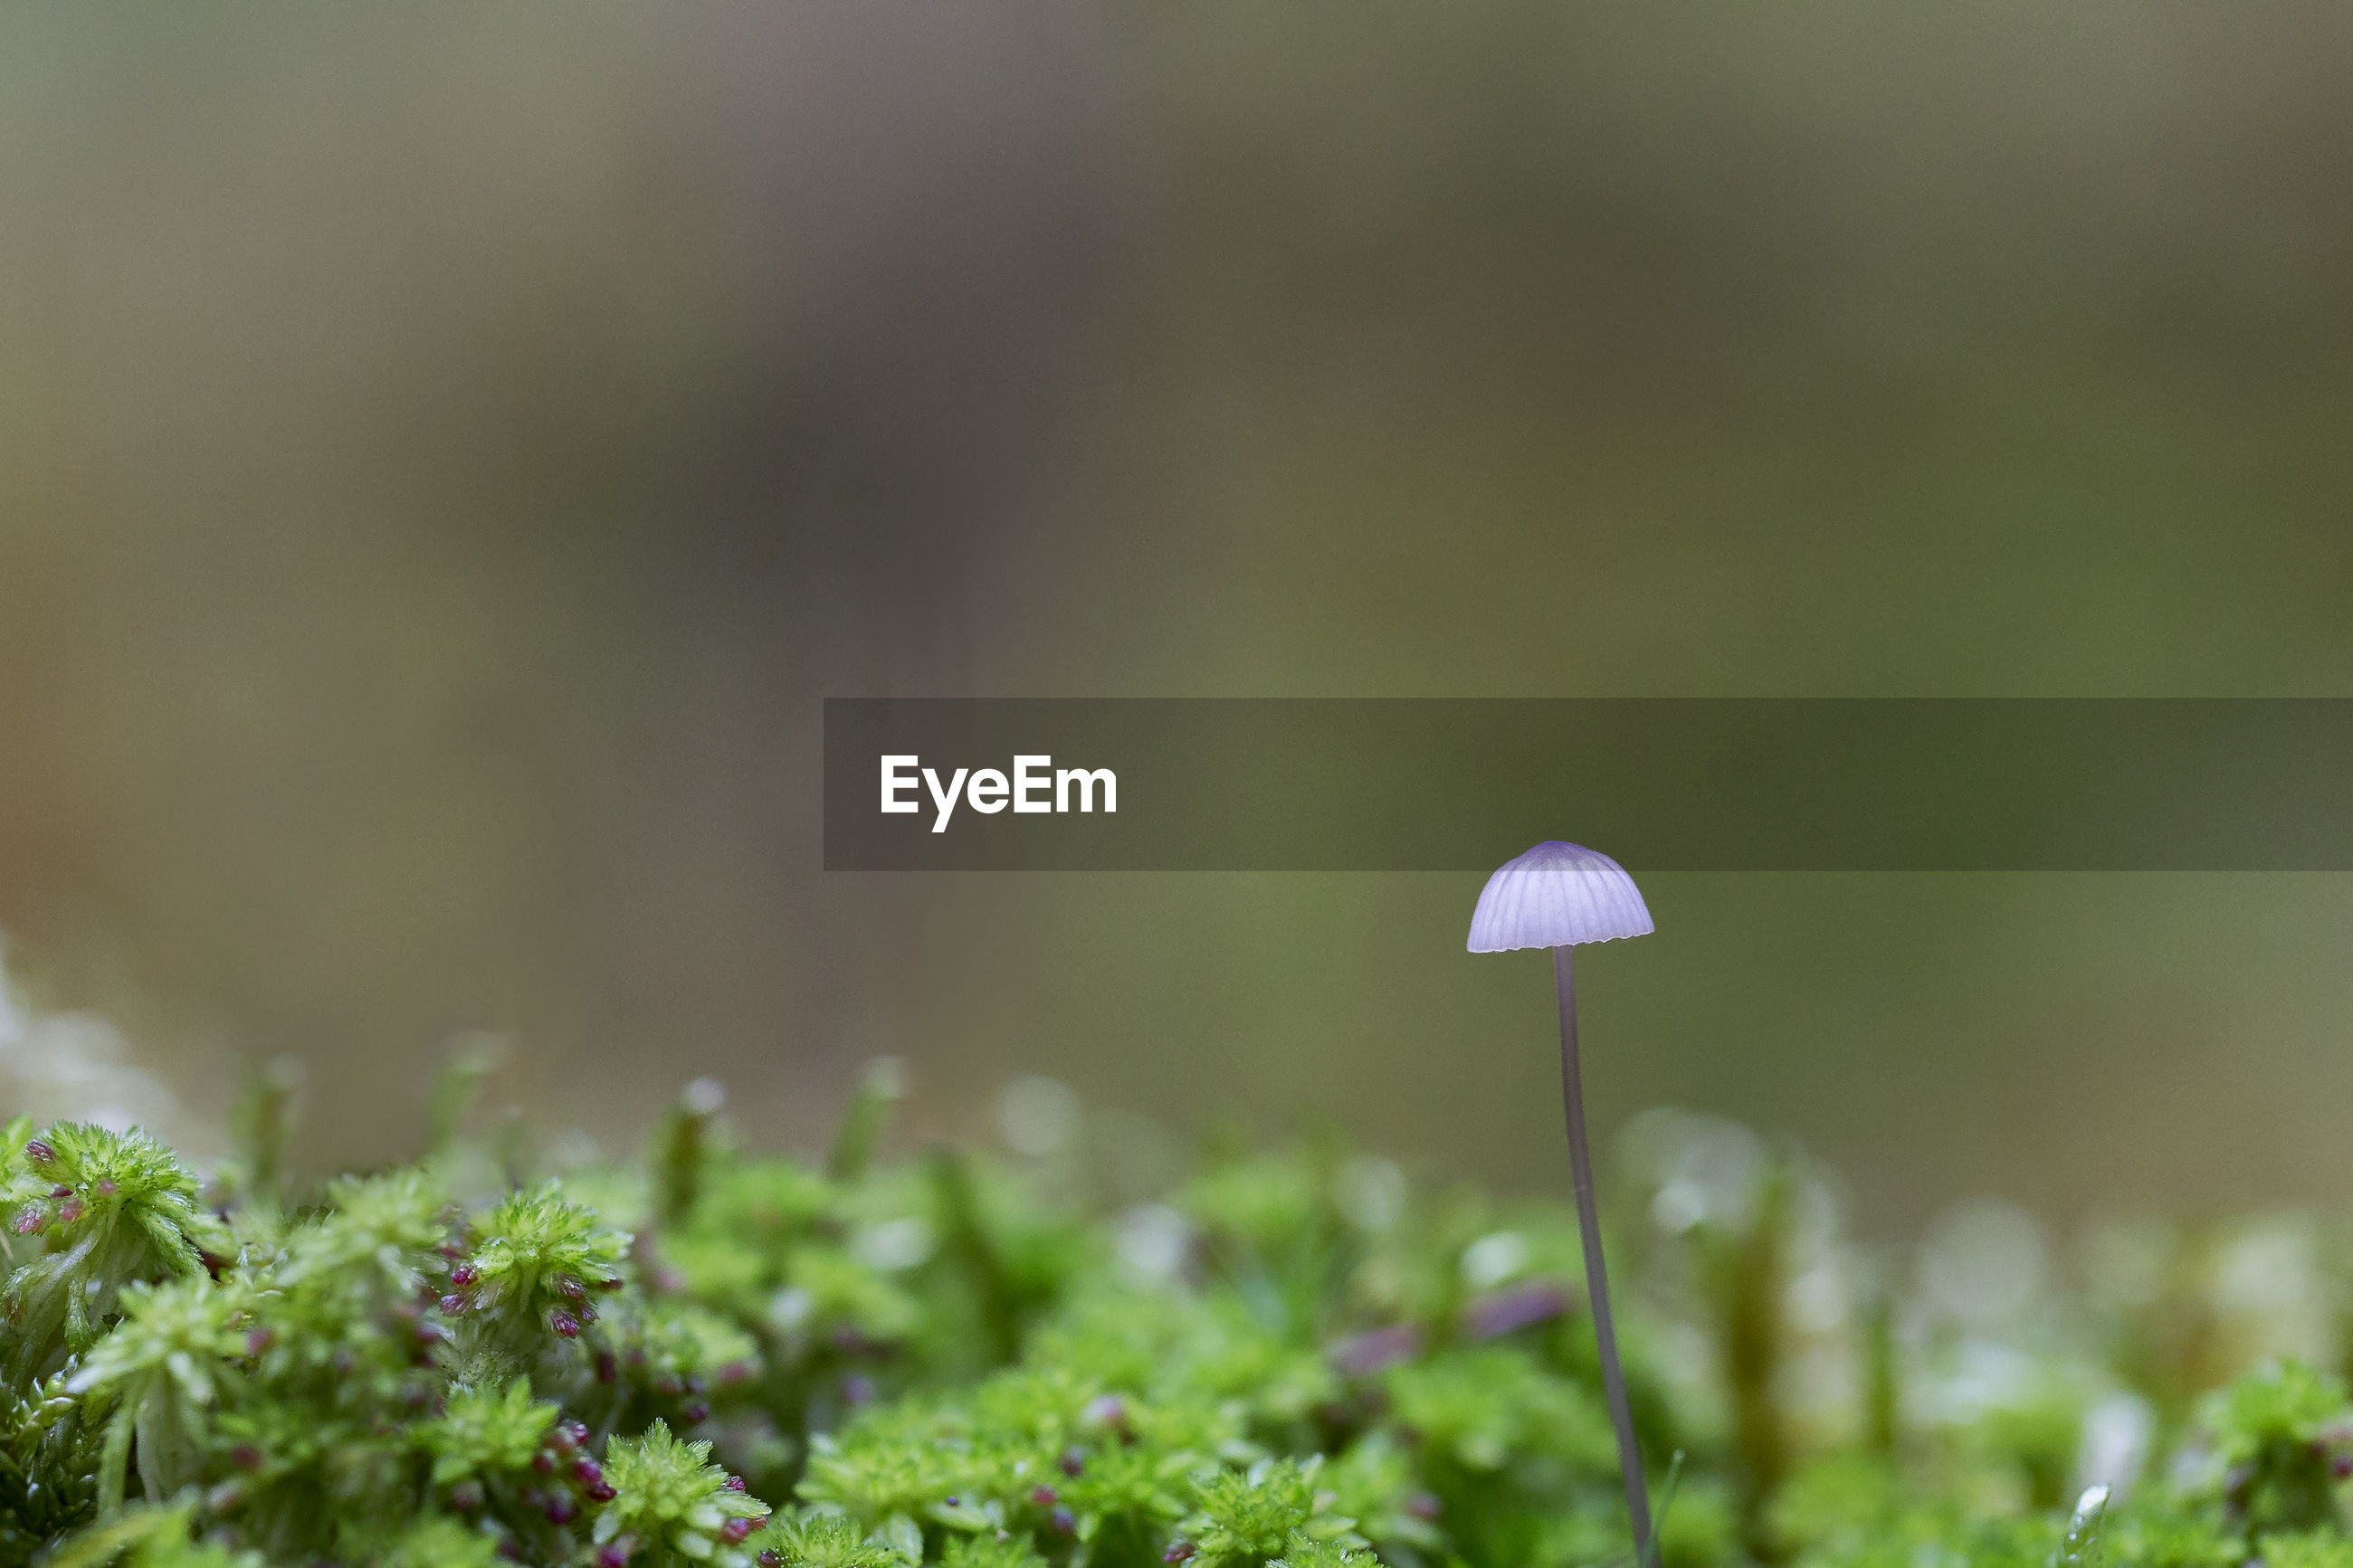 CLOSE-UP OF MUSHROOM GROWING IN PLANT